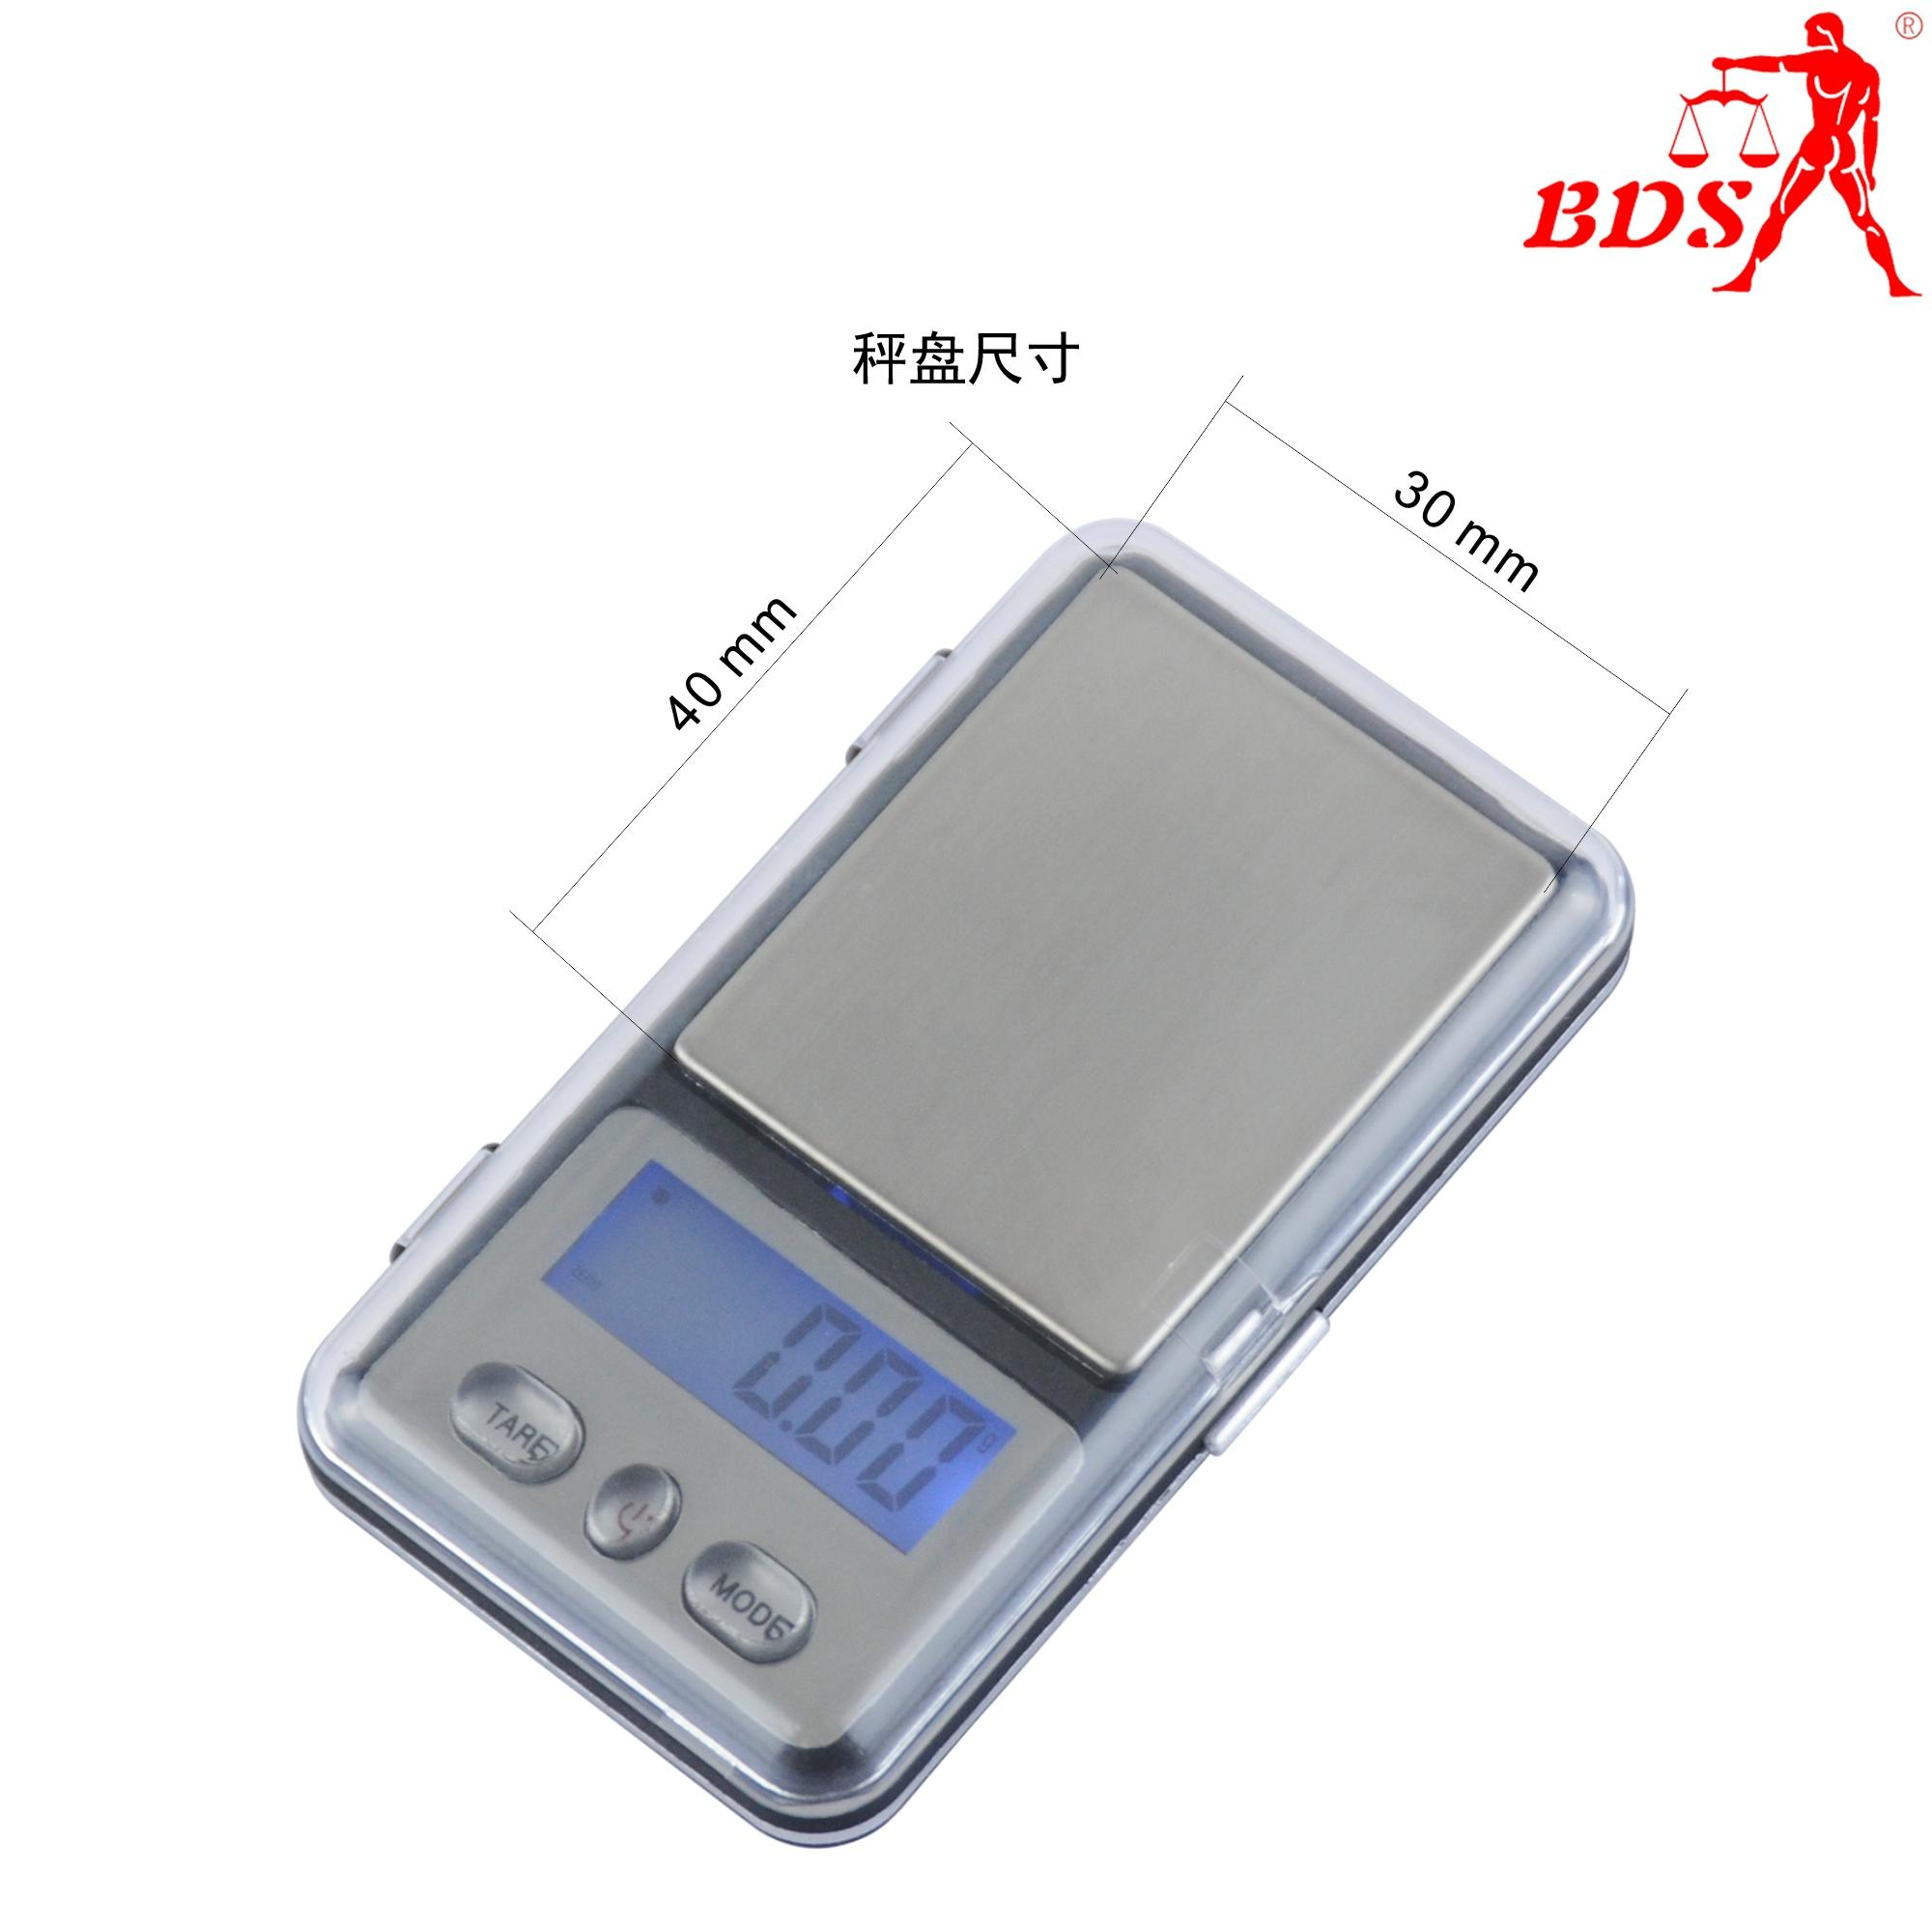 BDS-333 mini pocket jewelry scale electronic scale  4